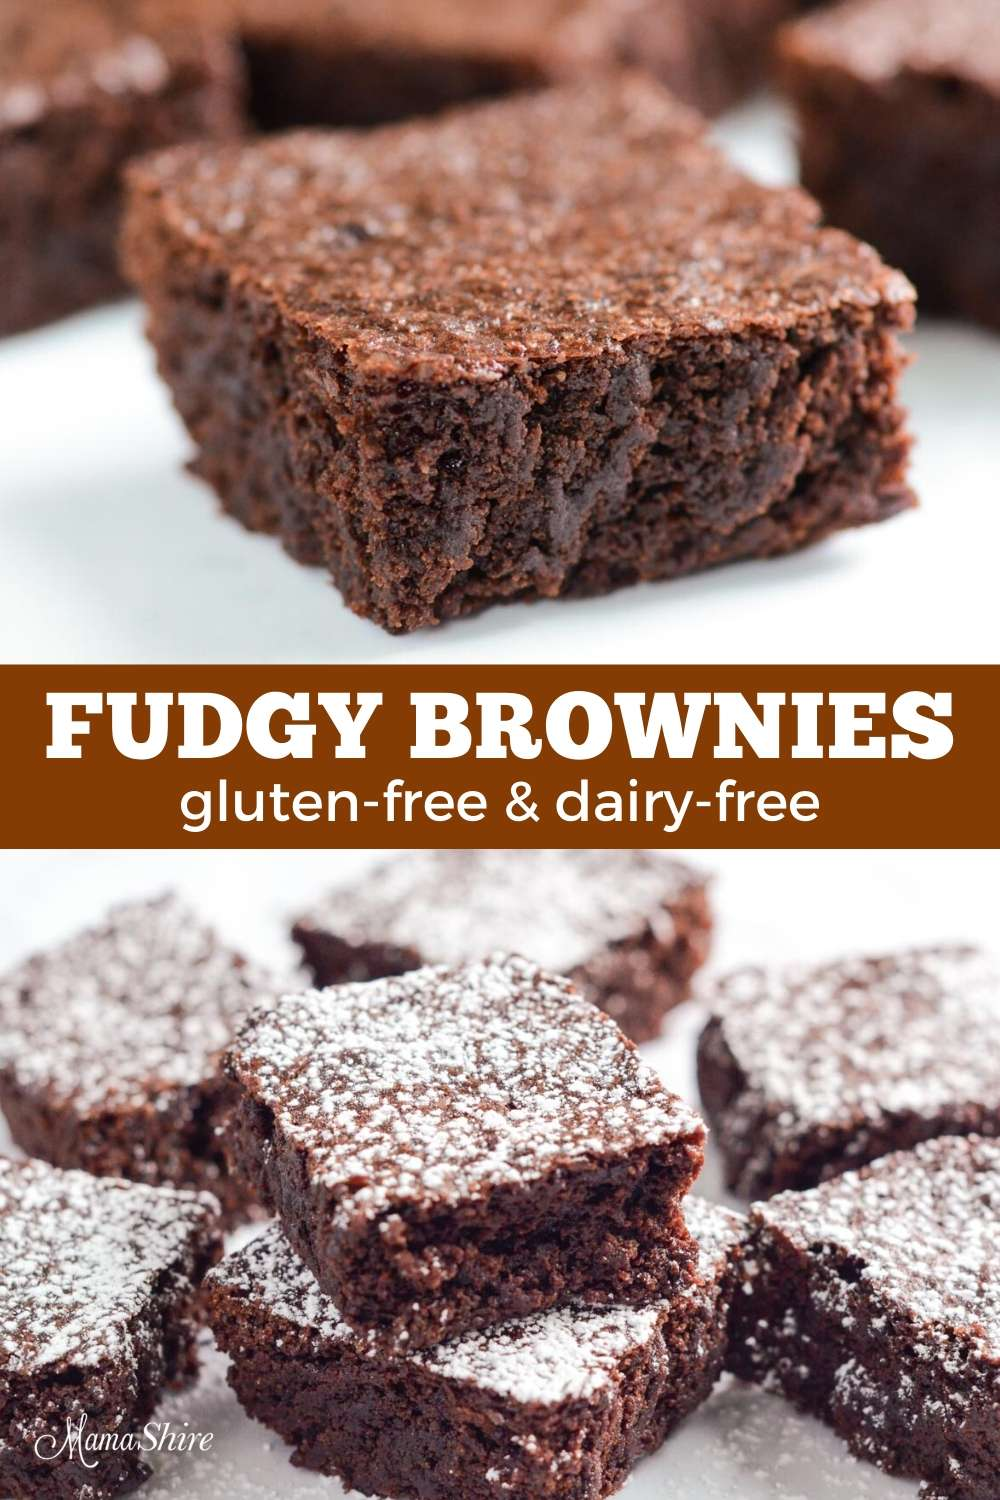 Homemade brownies made from a gluten-free & dairy-free recipe